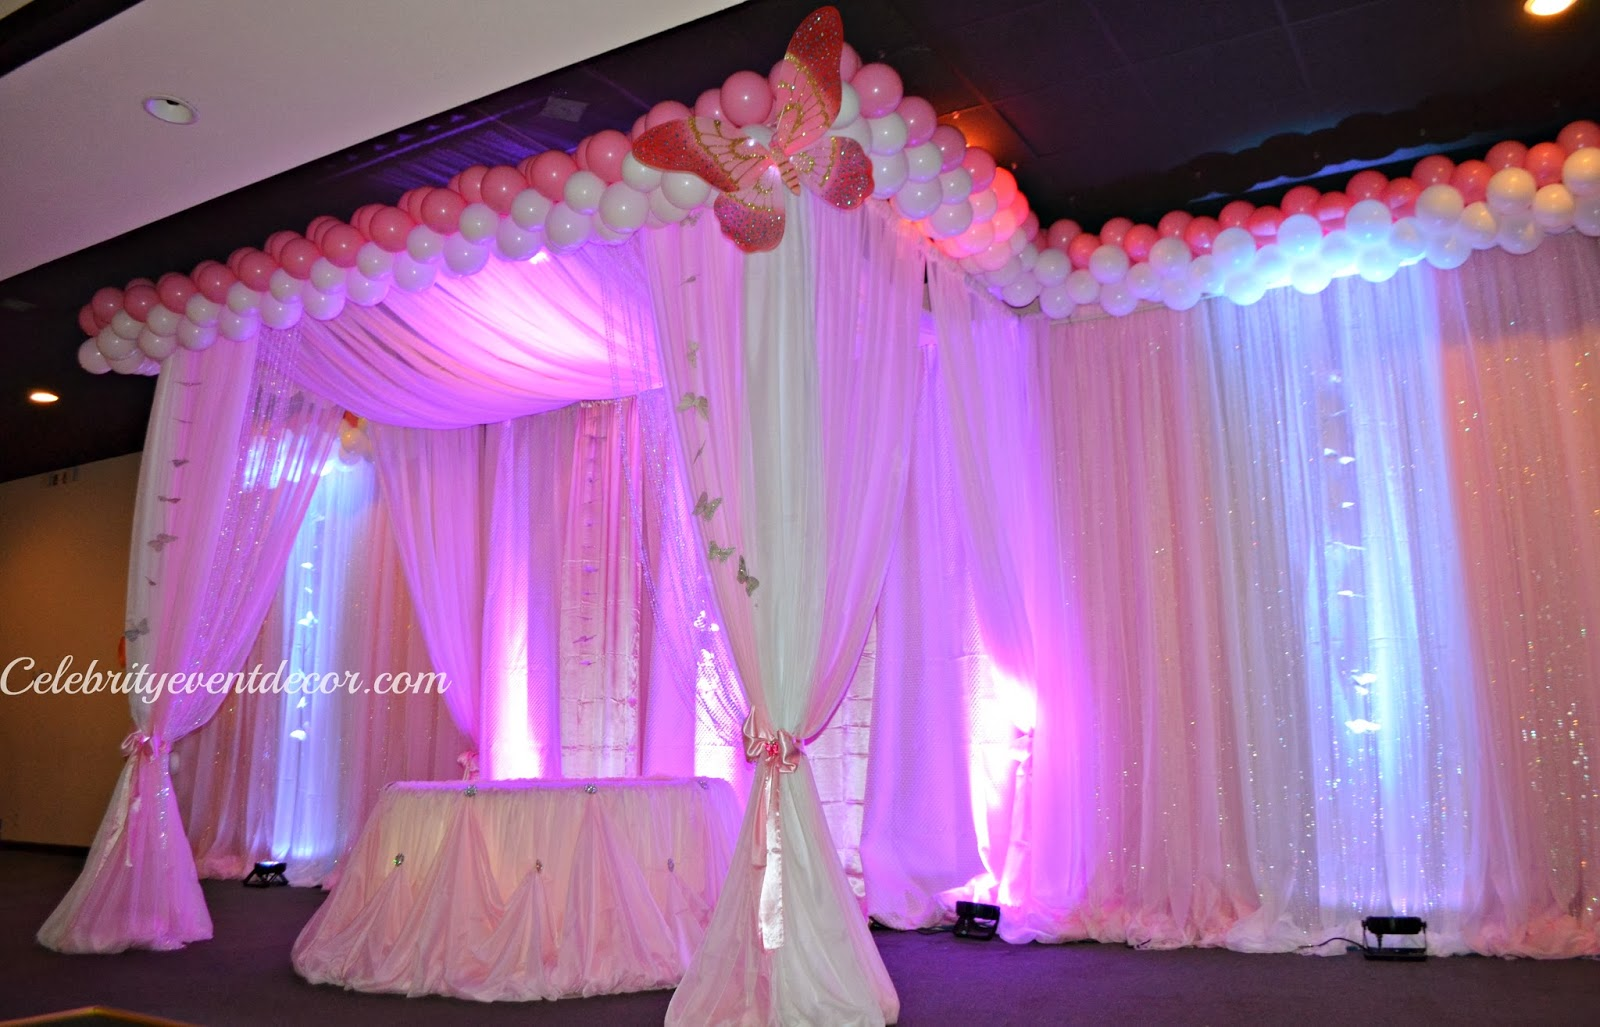 Celebrity Event Decor Banquet Hall LLC 2014